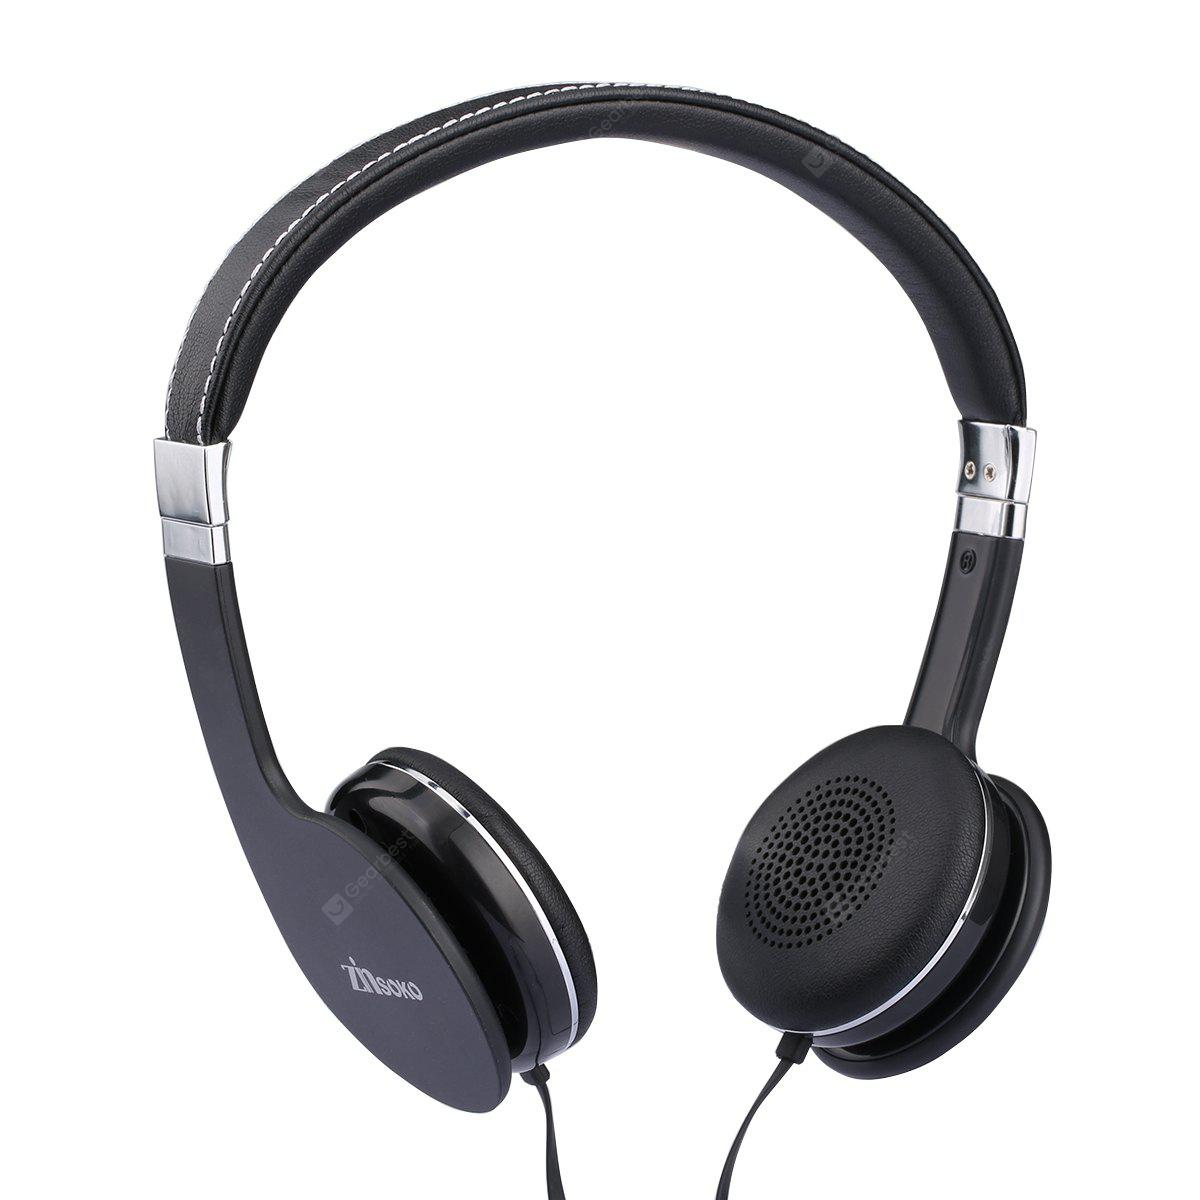 Zinsoko 857 stero hifi headphone